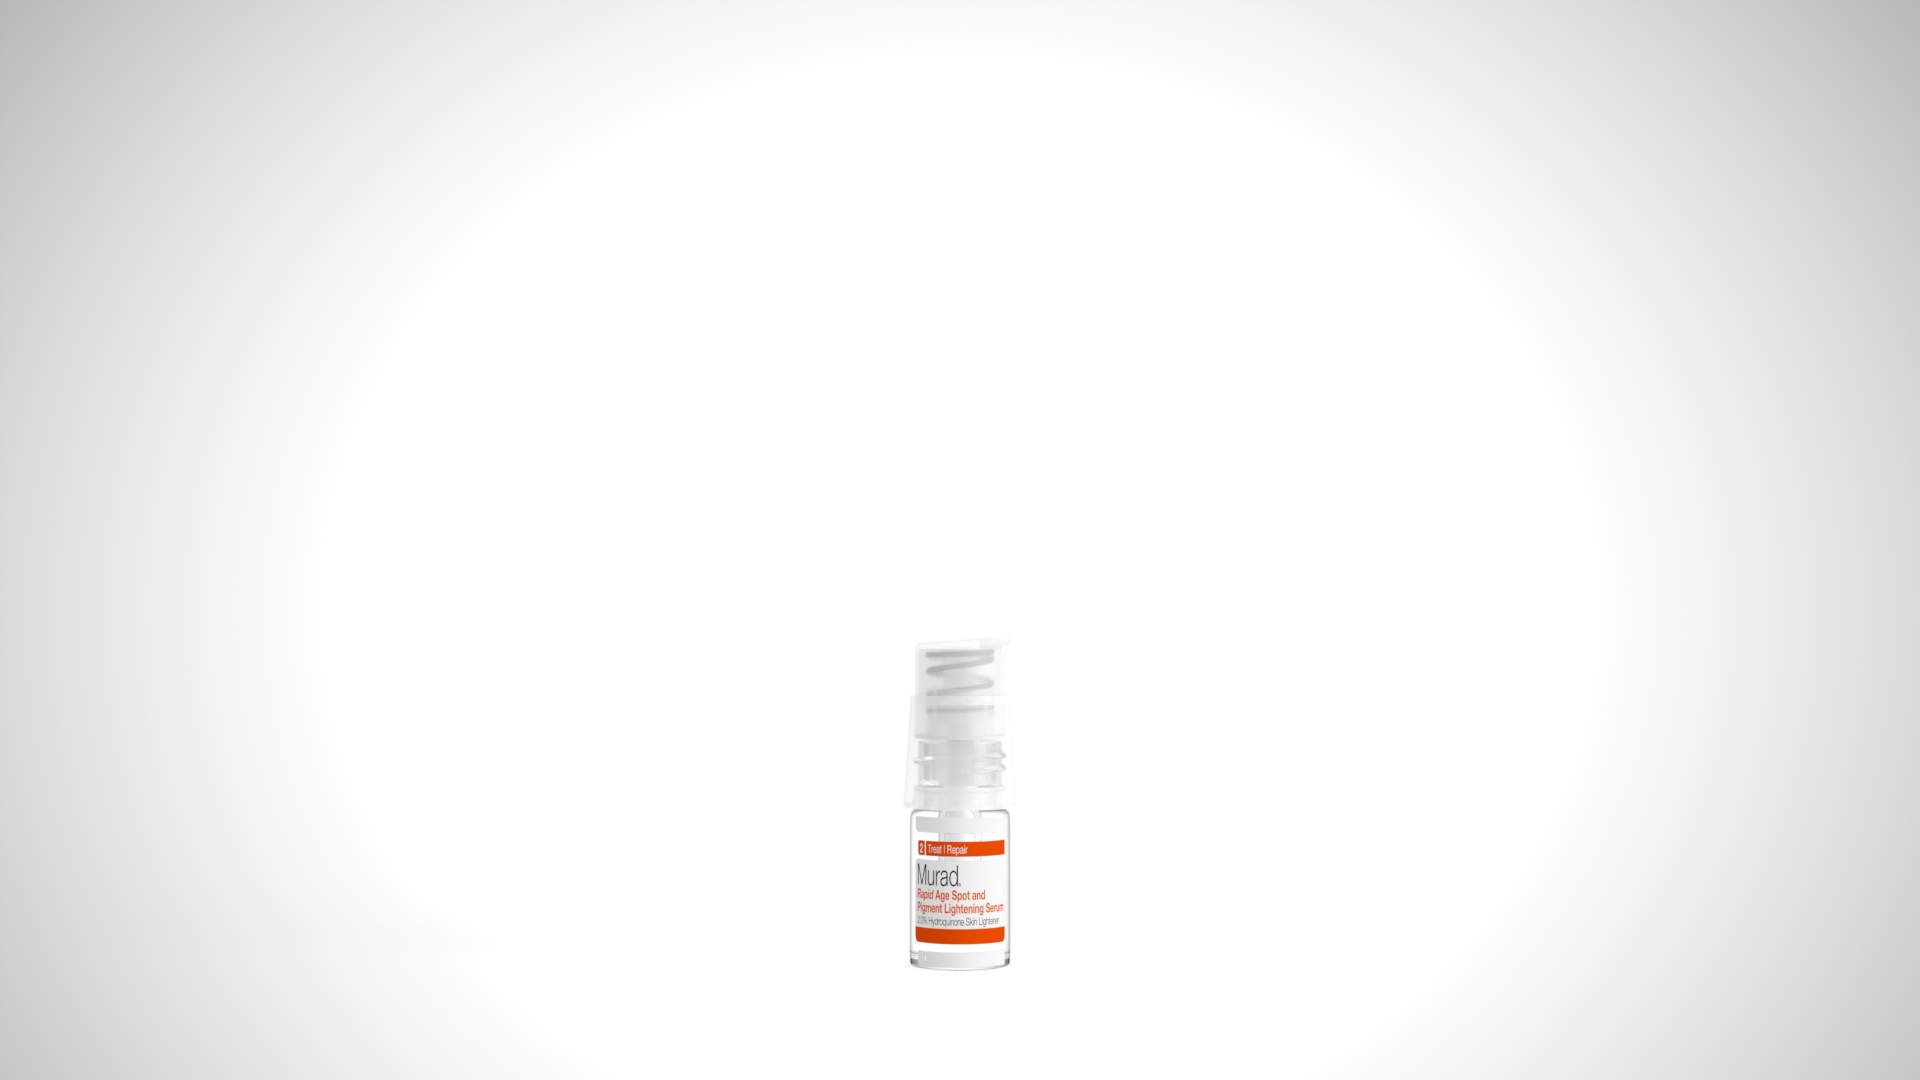 RapidAgeSpotAndPigmentLighteningSerum_Small_Bottle